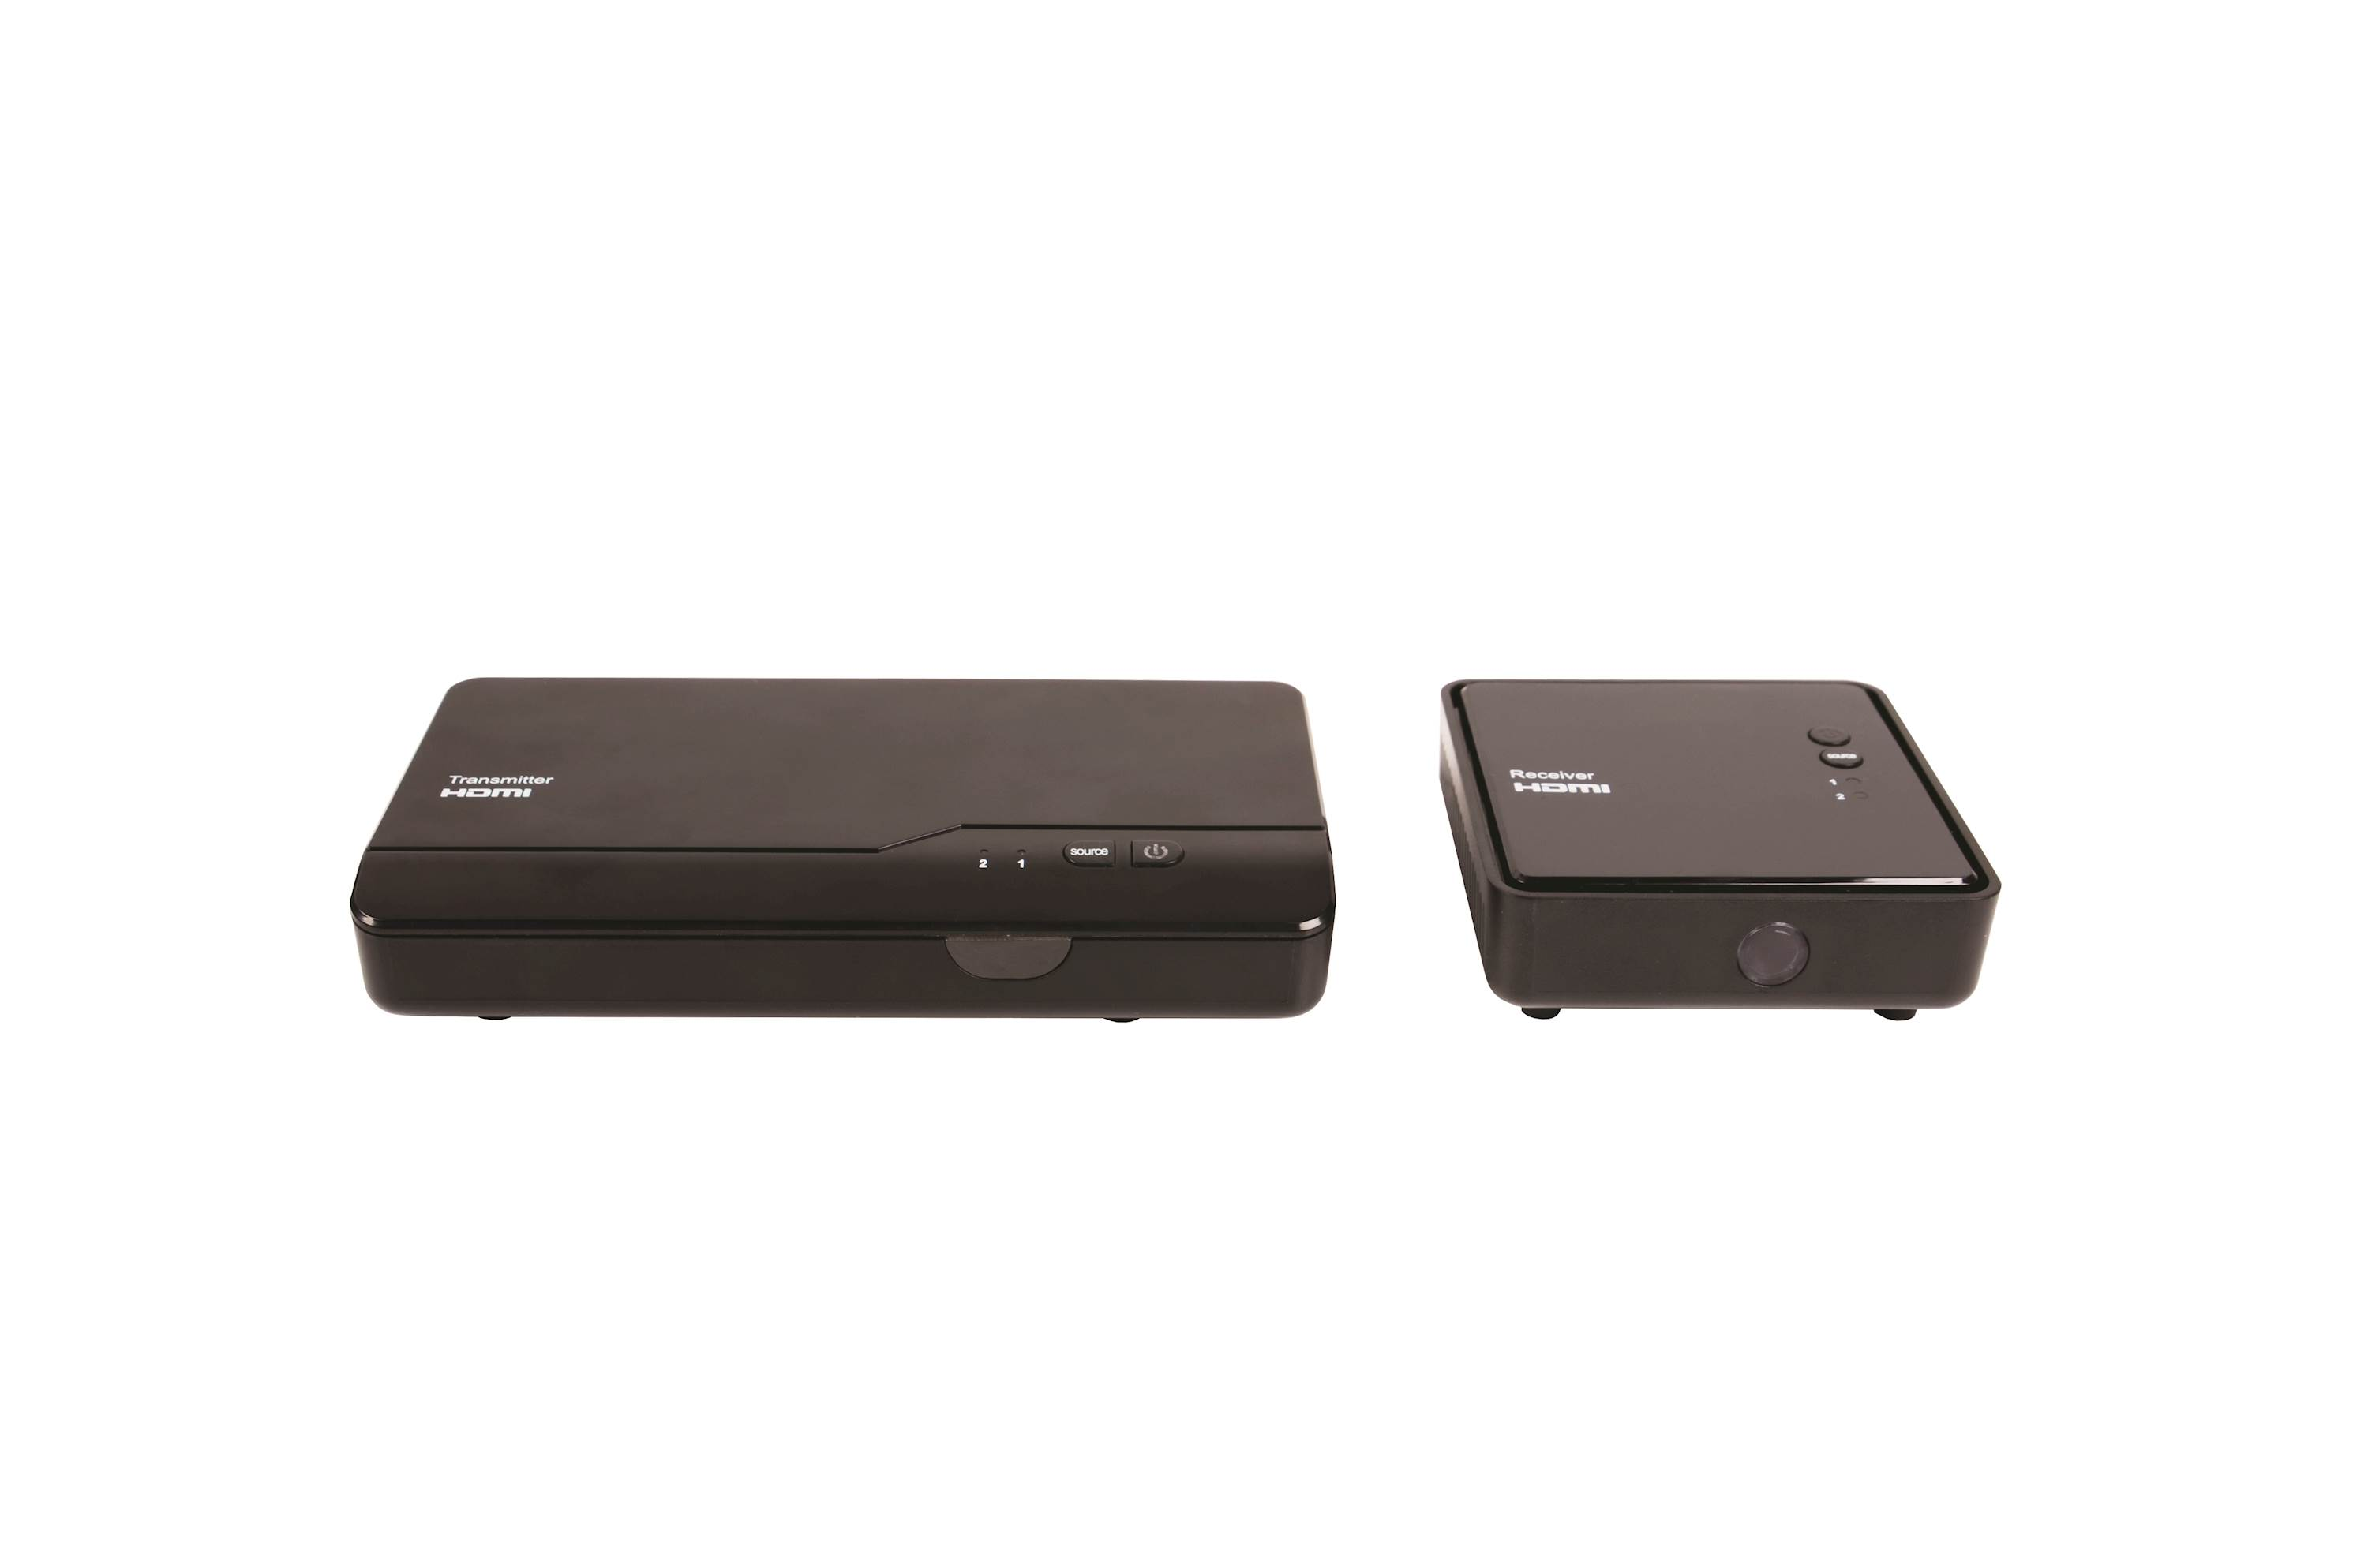 Optoma Whd200 Accessories Europe Av Receivers Datasheet For Home Theater Product Solution Cancel Download